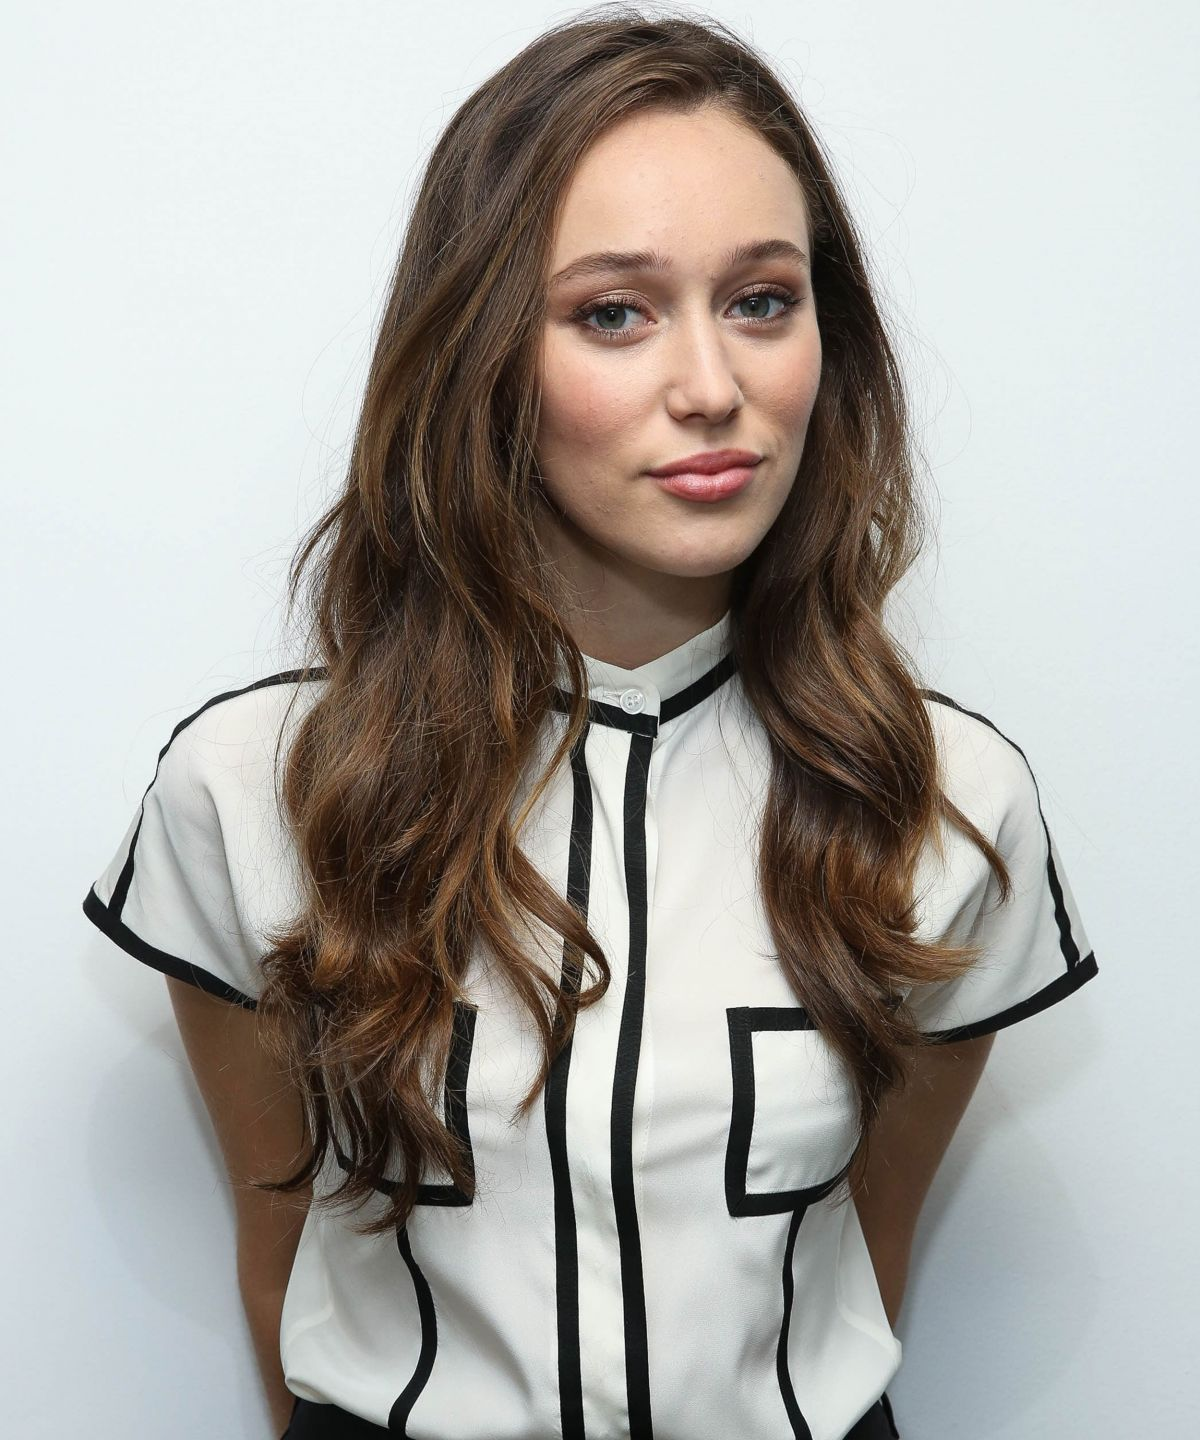 http://www.hawtcelebs.com/wp-content/uploads/2015/09/alycia-debnam-carey-at-siriusx-studios-in-new-york-09-01-2015_5.jpg